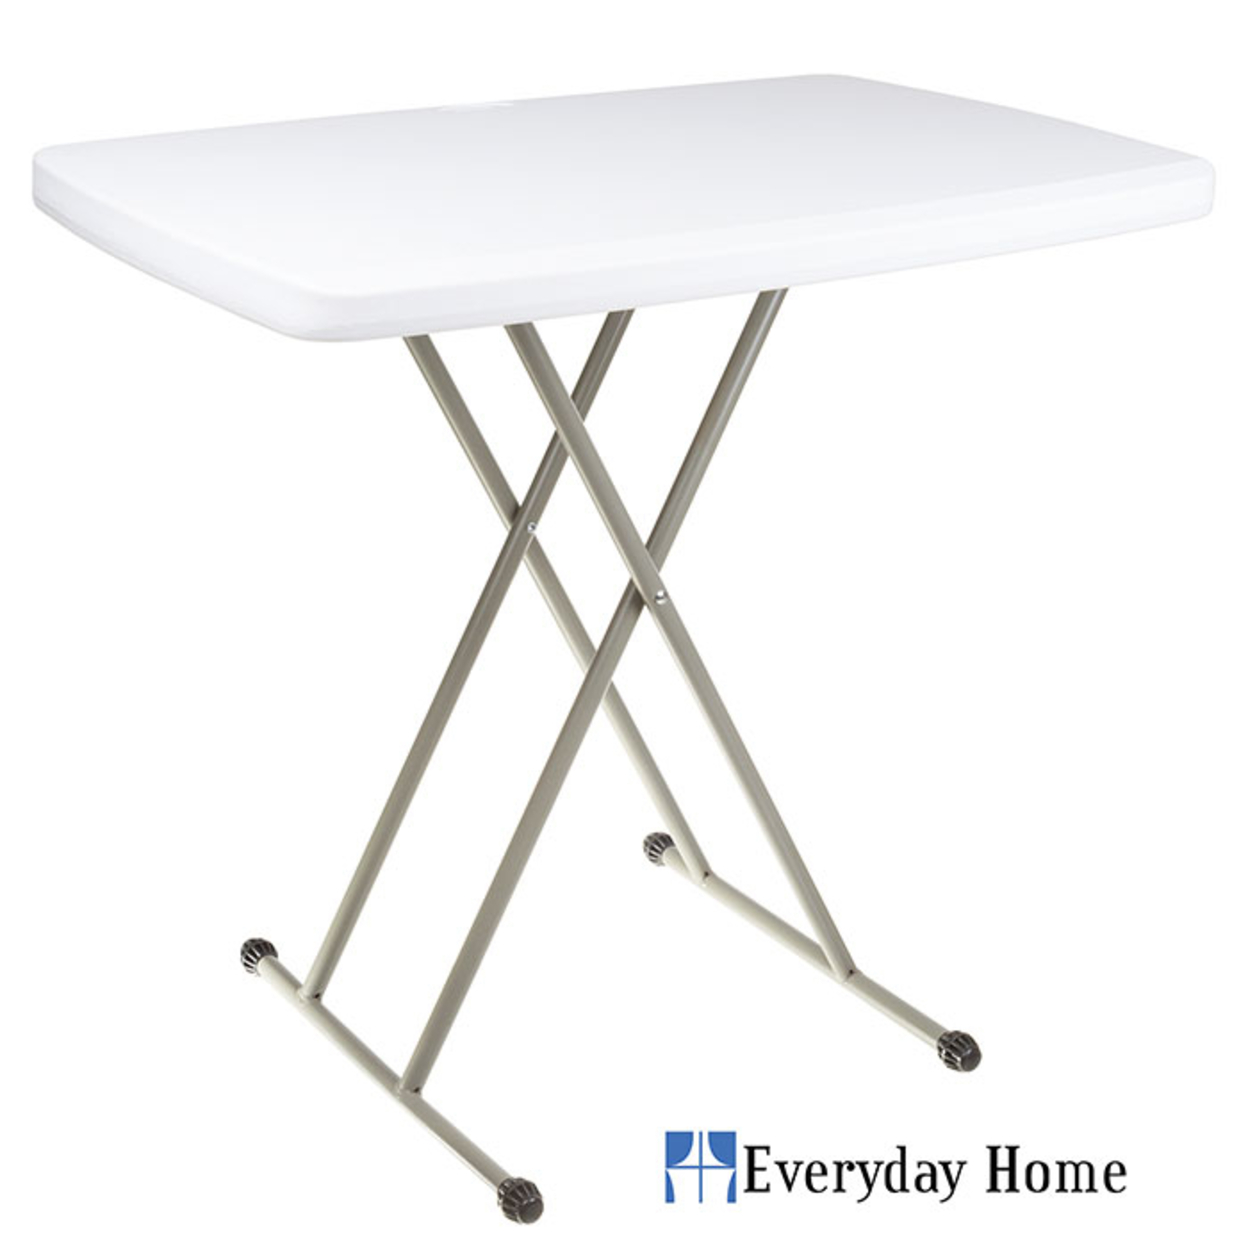 home decor tables the best prices for home and garden 41 99 more details everyday home folding table 30 x 20 x 28